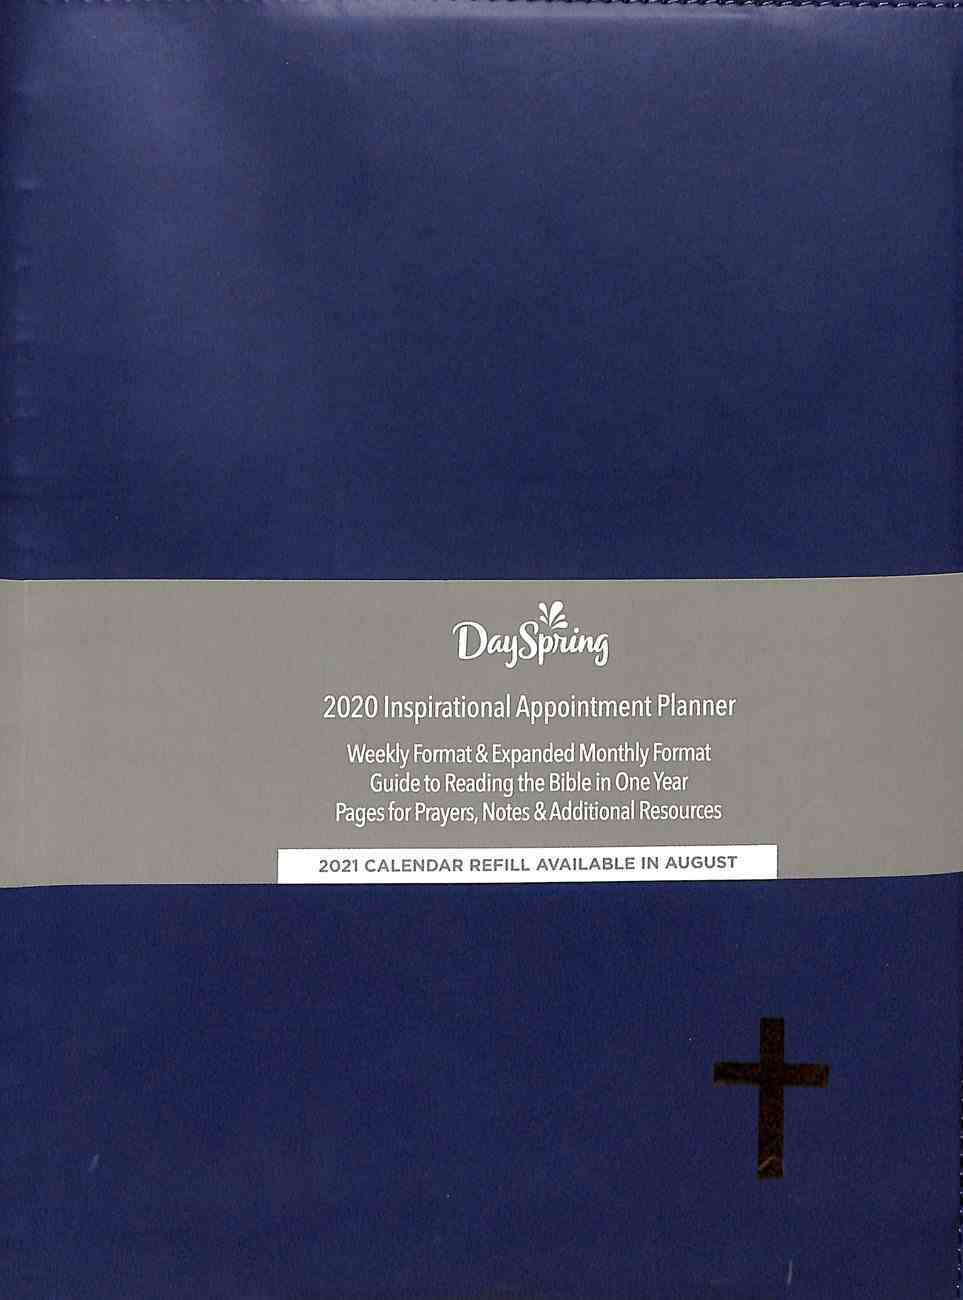 2020 Appointment Diary/Planner: Dark Blue, Gold Cross, Premium Faux Leather Spiral